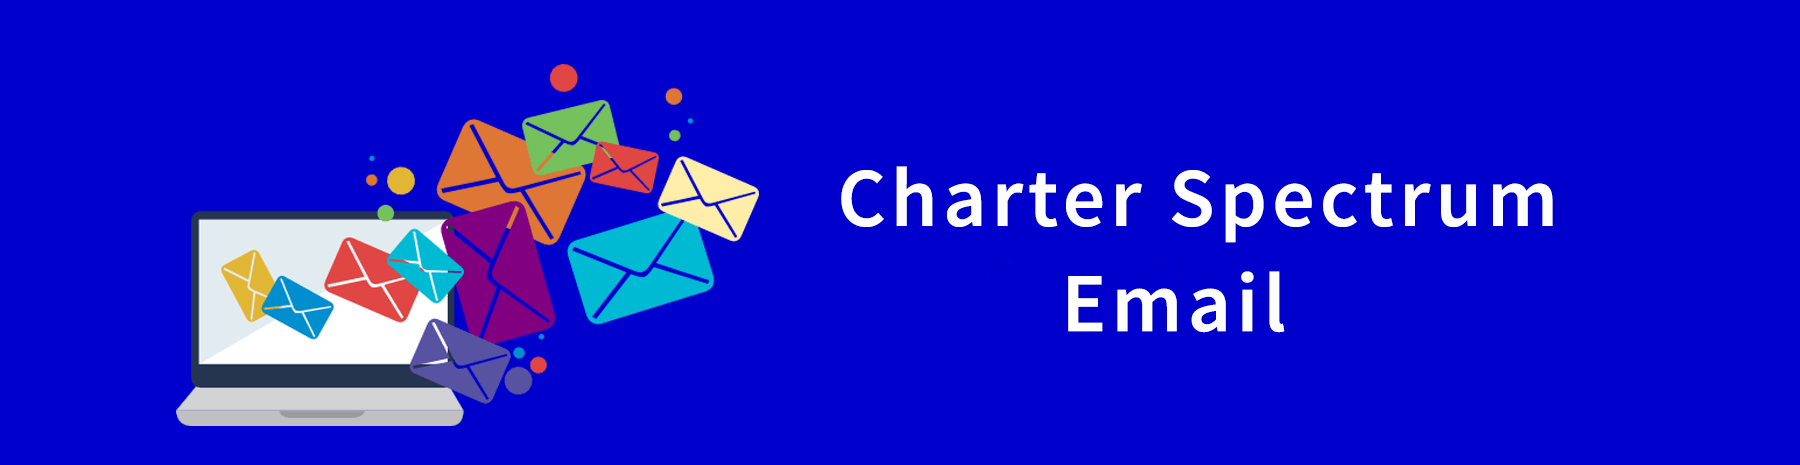 Charter Spectrum Email